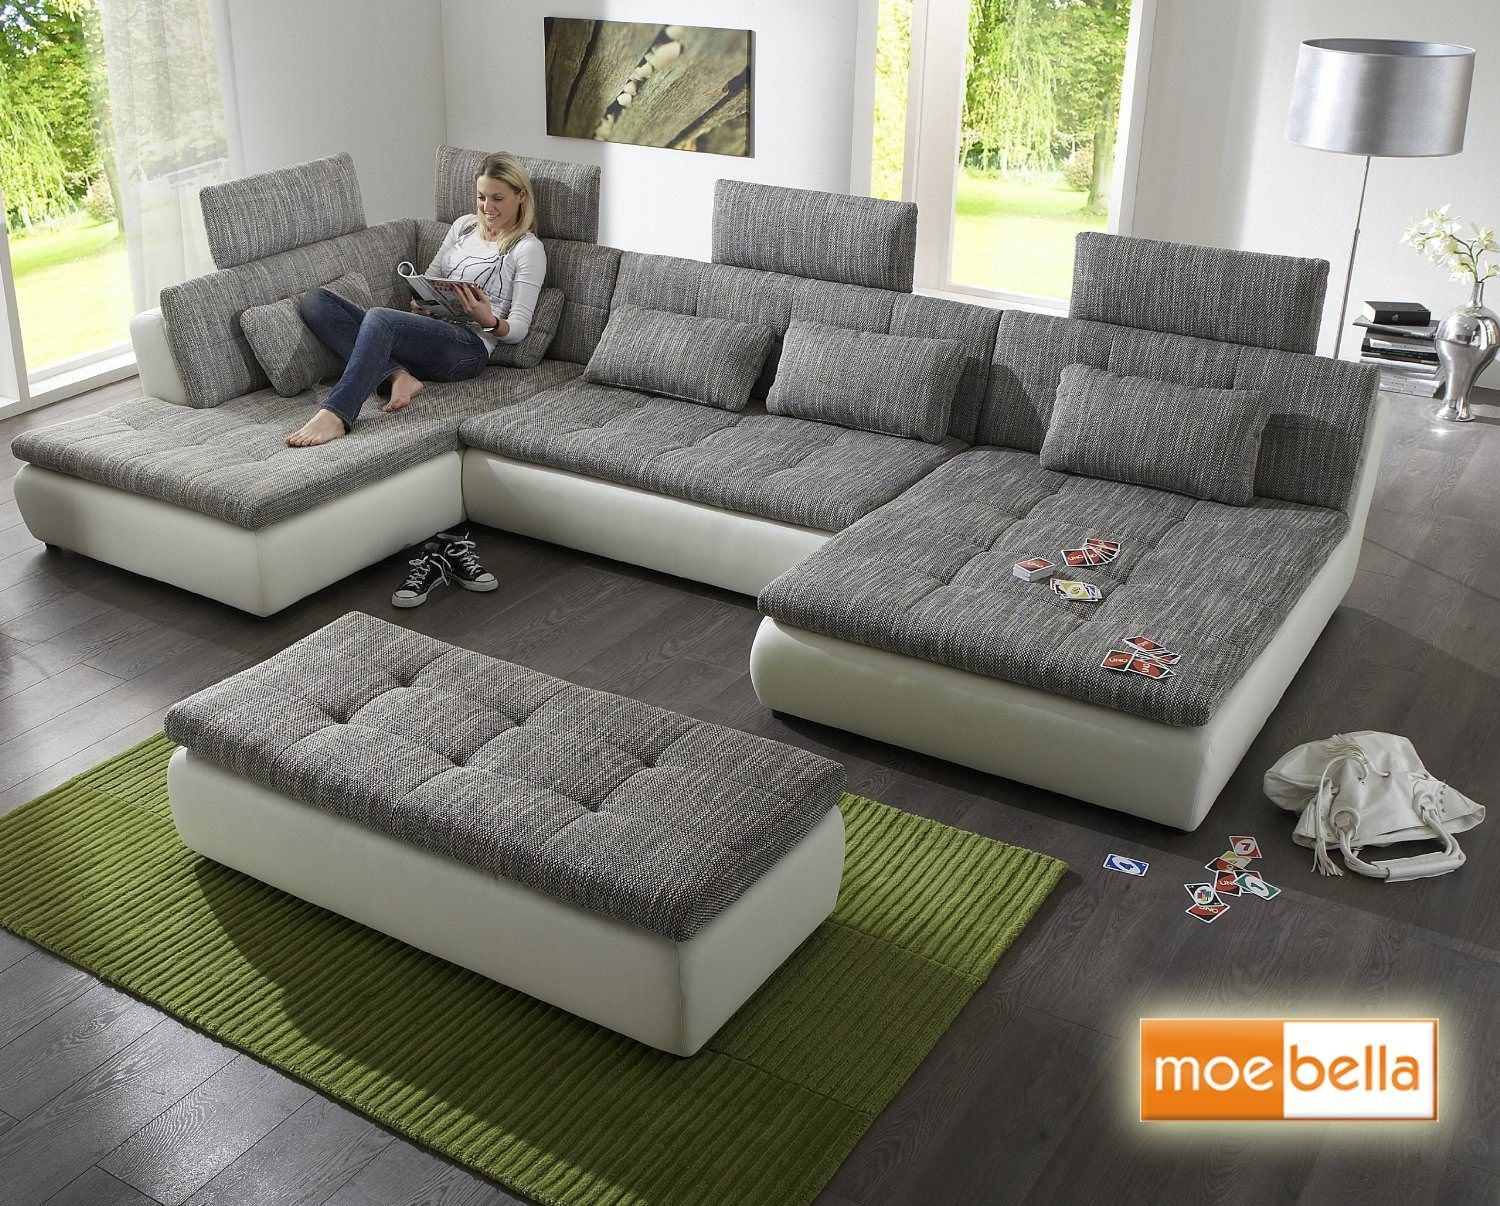 Schlafsofas Big Pin By Homysofa On Sofa Furniture In 2019 Big Sofas Living Room